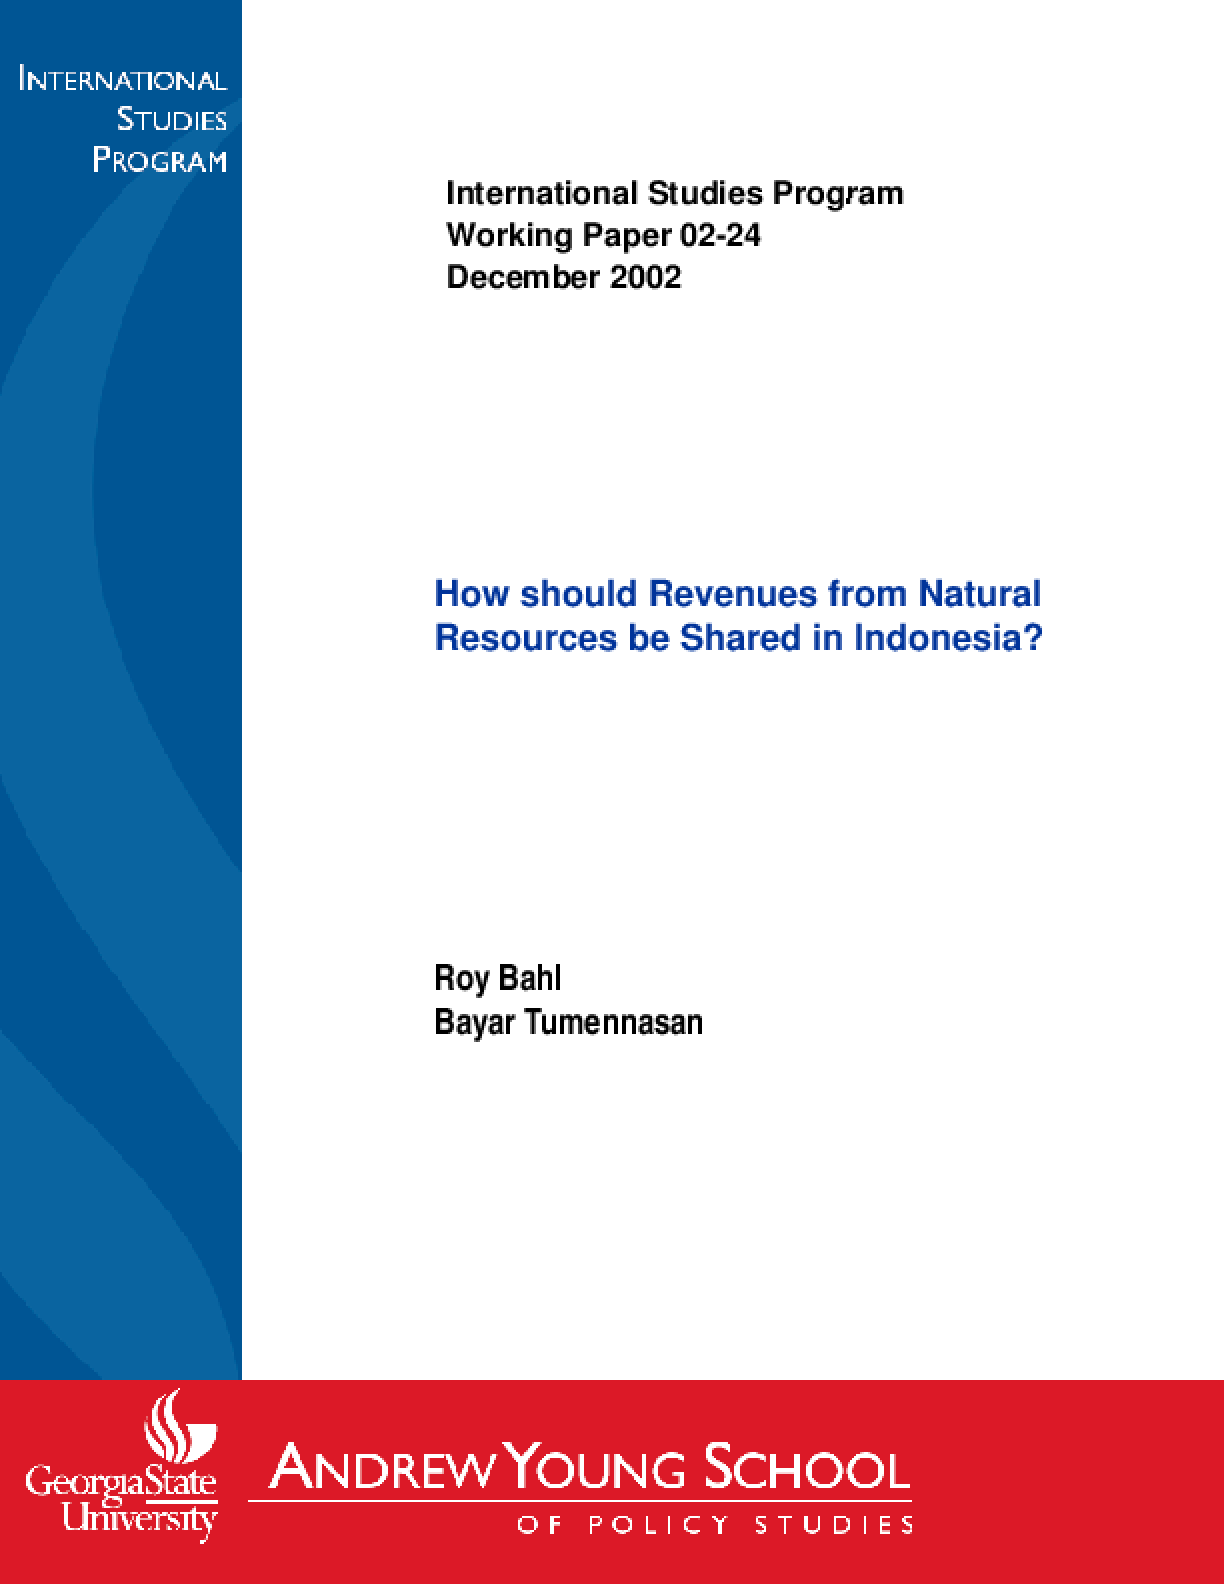 How Should Revenues from Natural Resources be Shared in Indonesia?